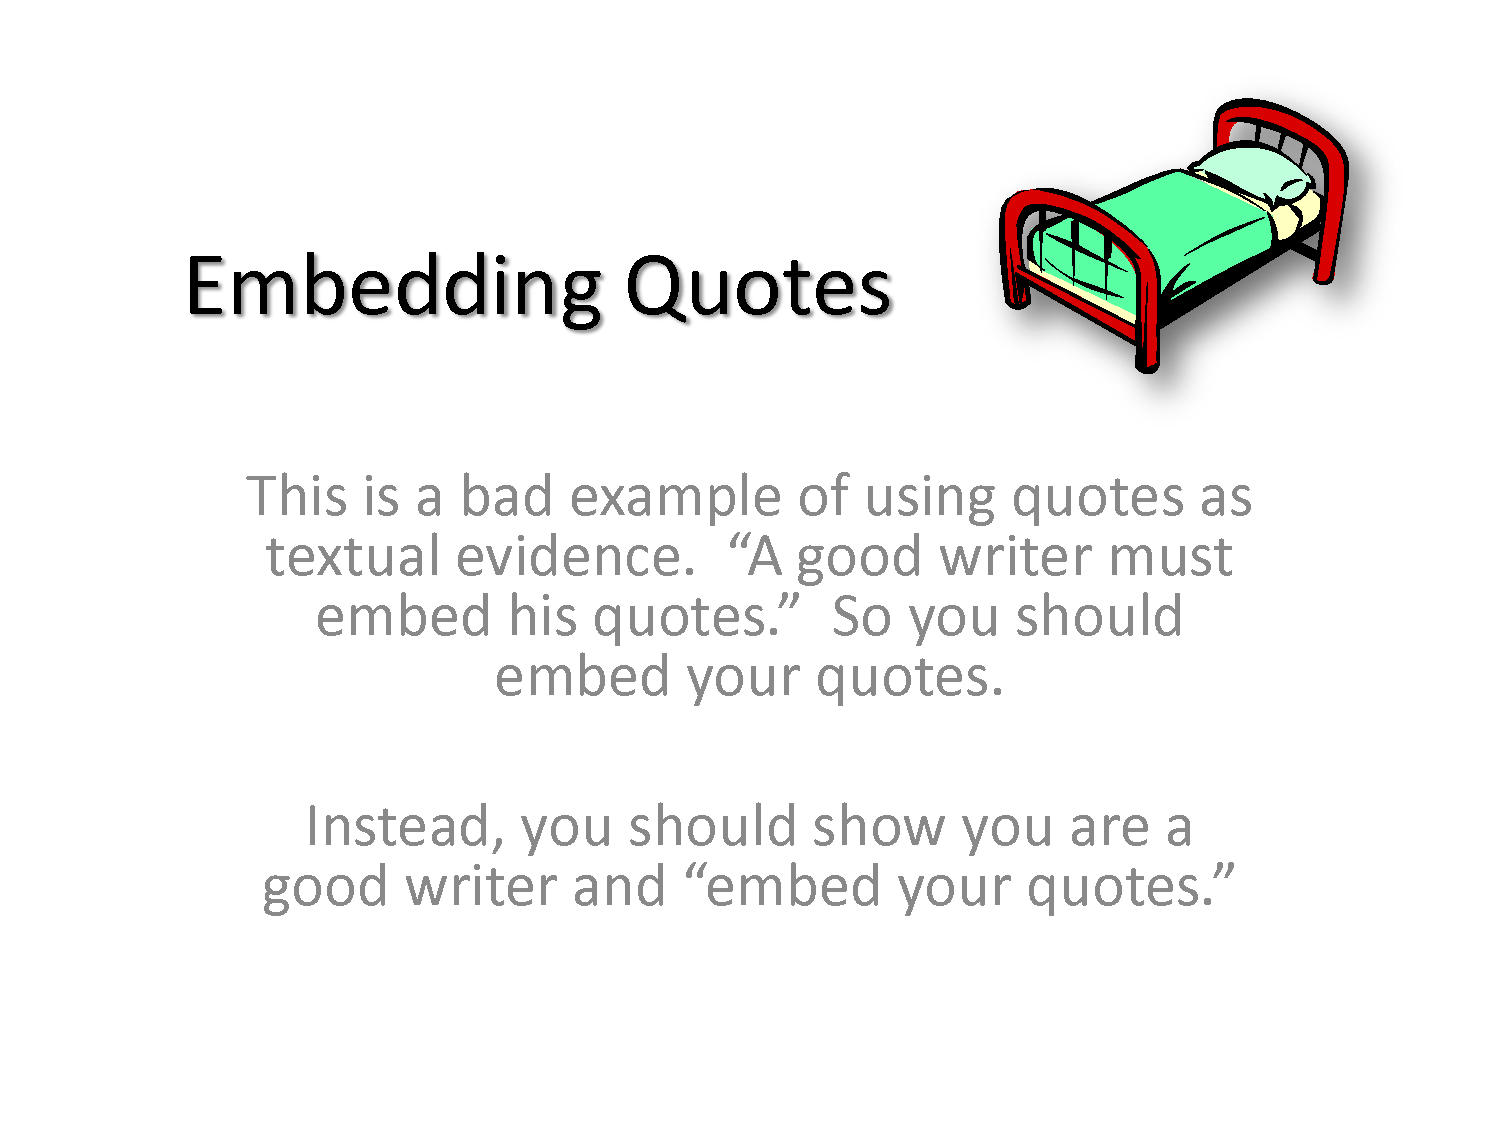 embedding a quote in an essay Embedding quotes in essays dissertation editing services prices i should have written my essay on why there should be no ties in football epigram barock beispiel essay inspirational essays about mothers hotel manager essay sunga park analysis essay writing an essay college level essay on second hand smoking essay on.